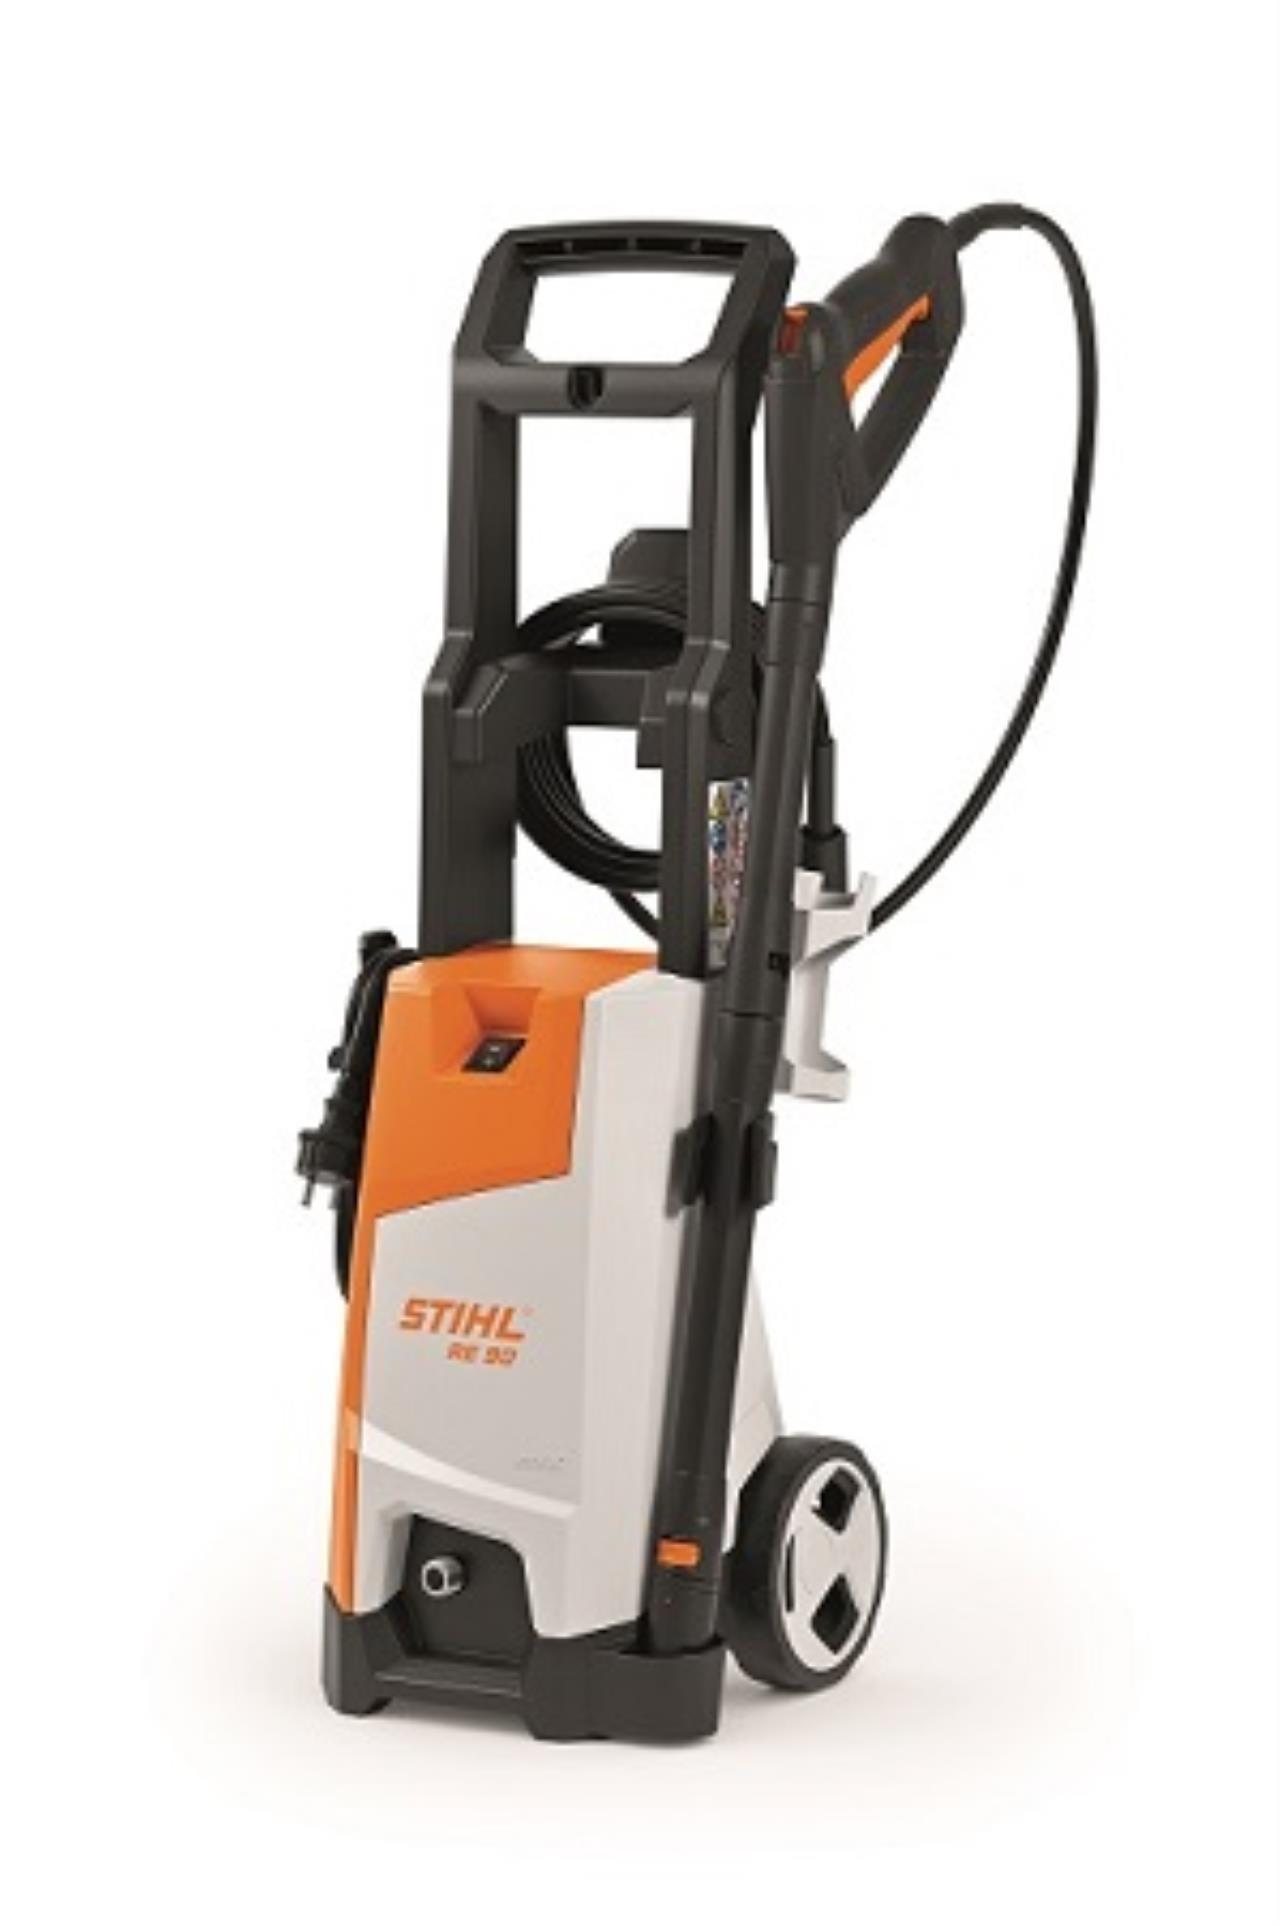 Stihl RE90 Højtryksrenser 10-100Bar/6m.Slange